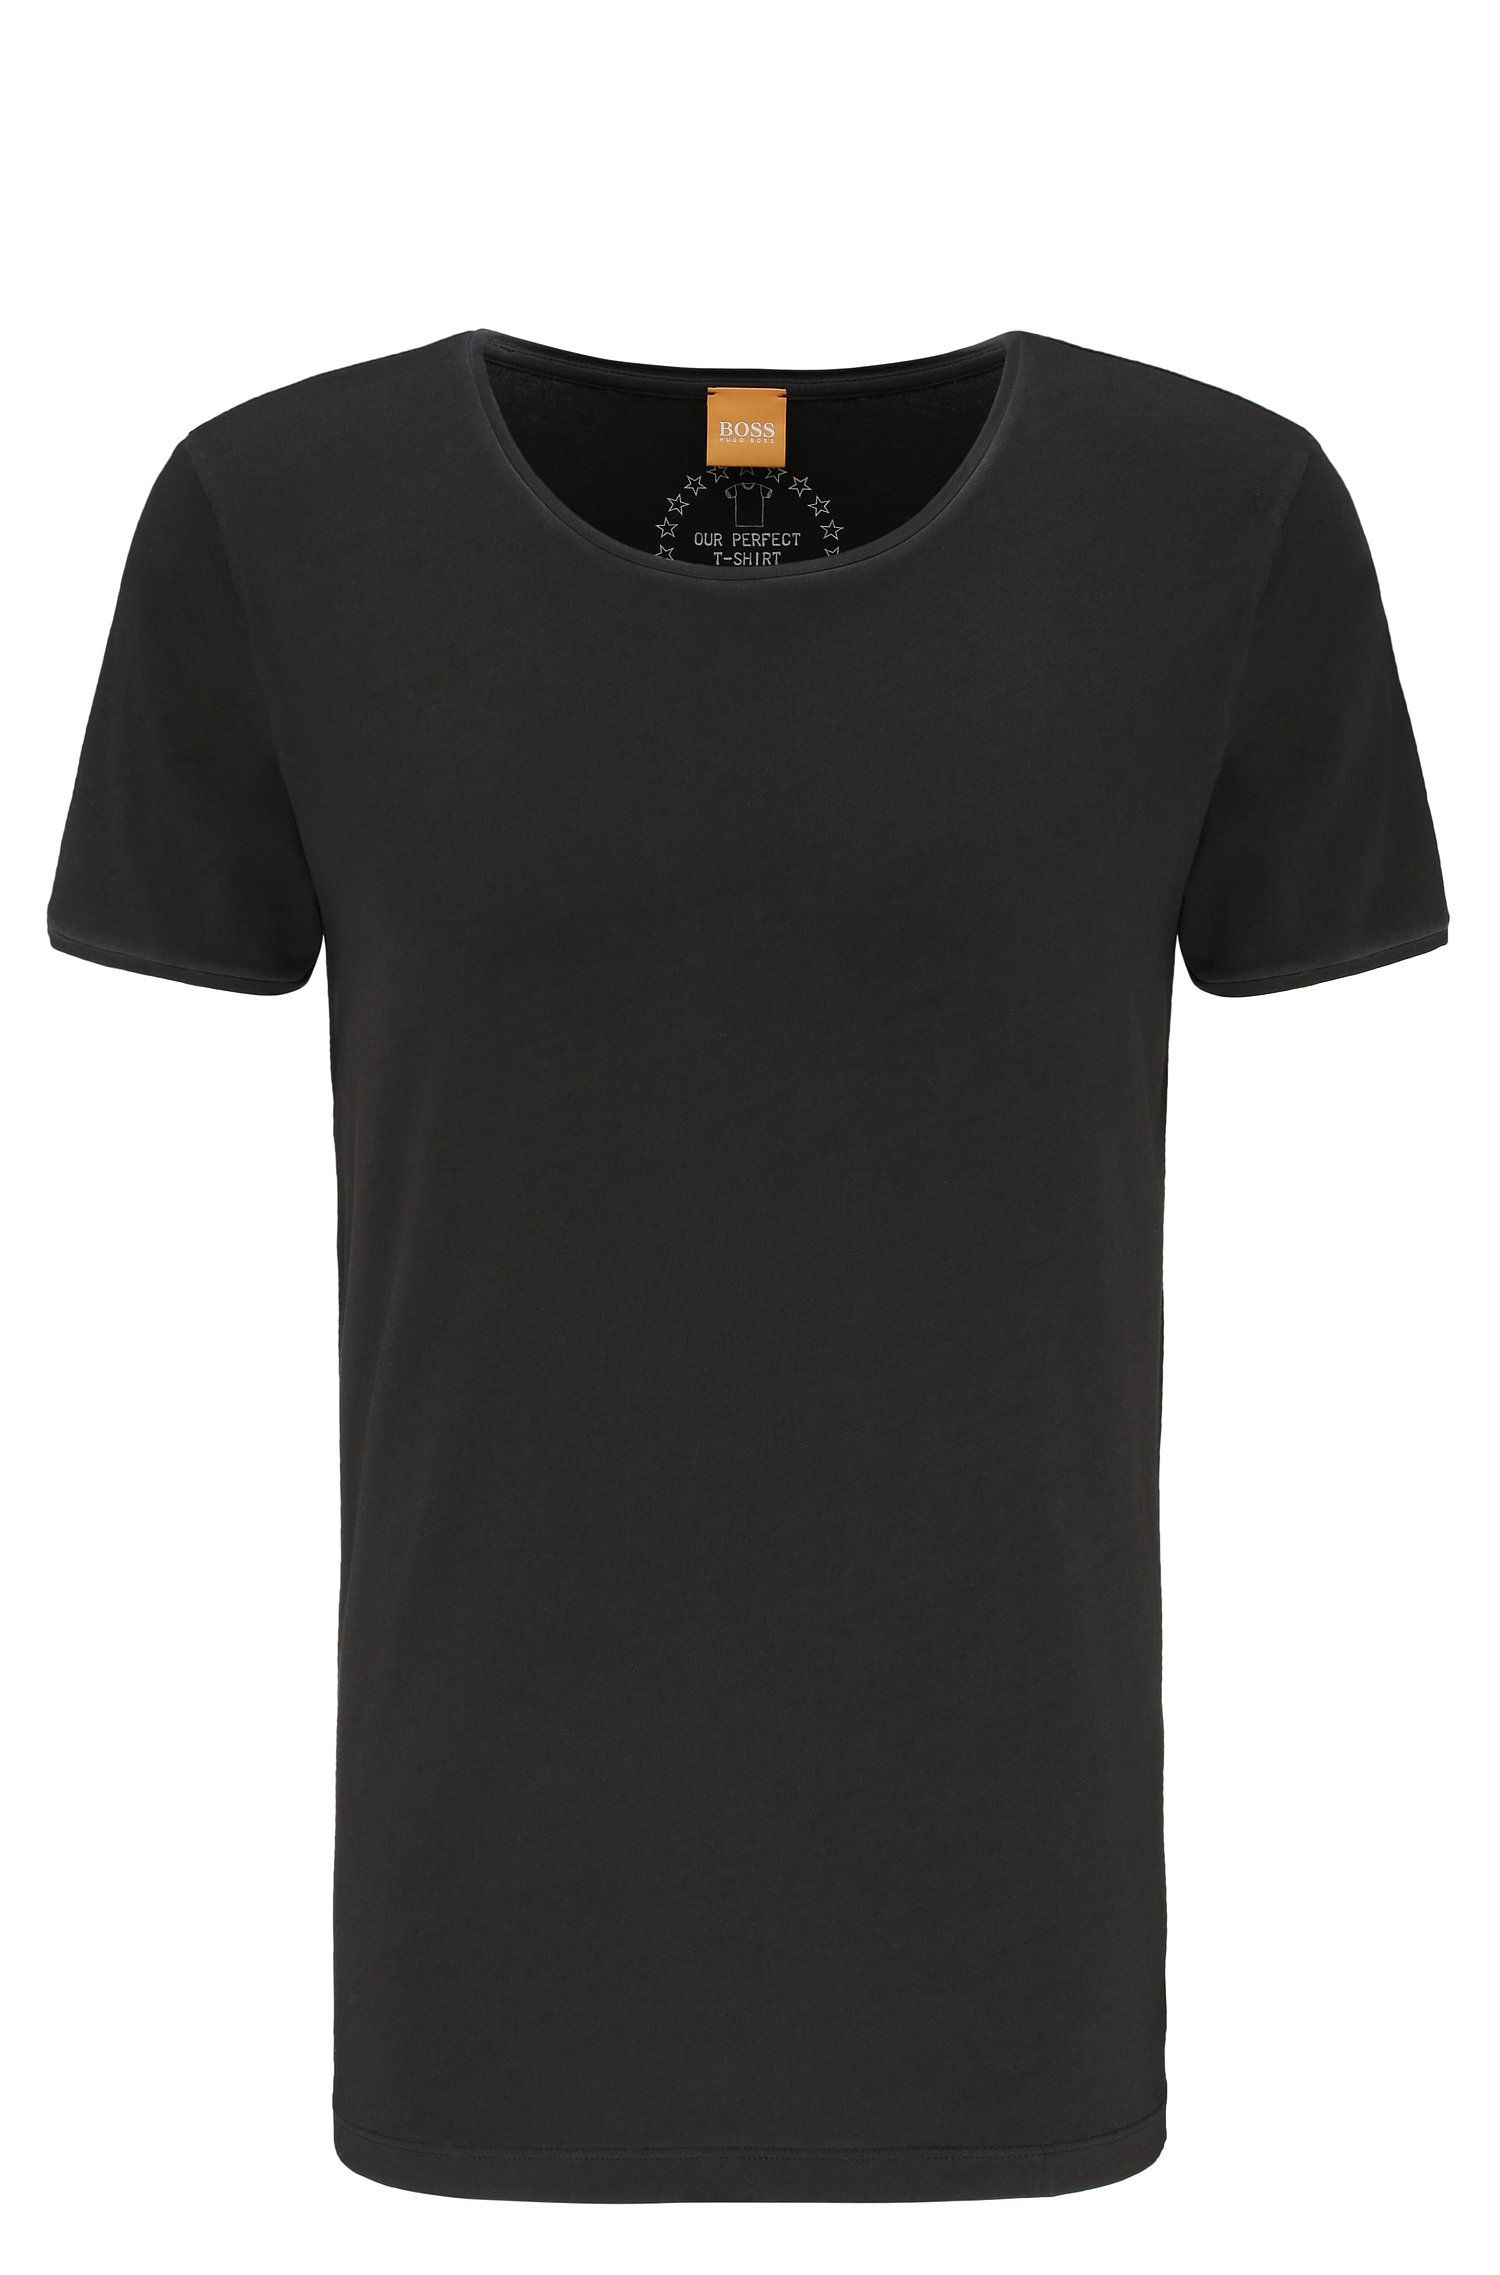 Regular-fit T-shirt in garment-washed cotton